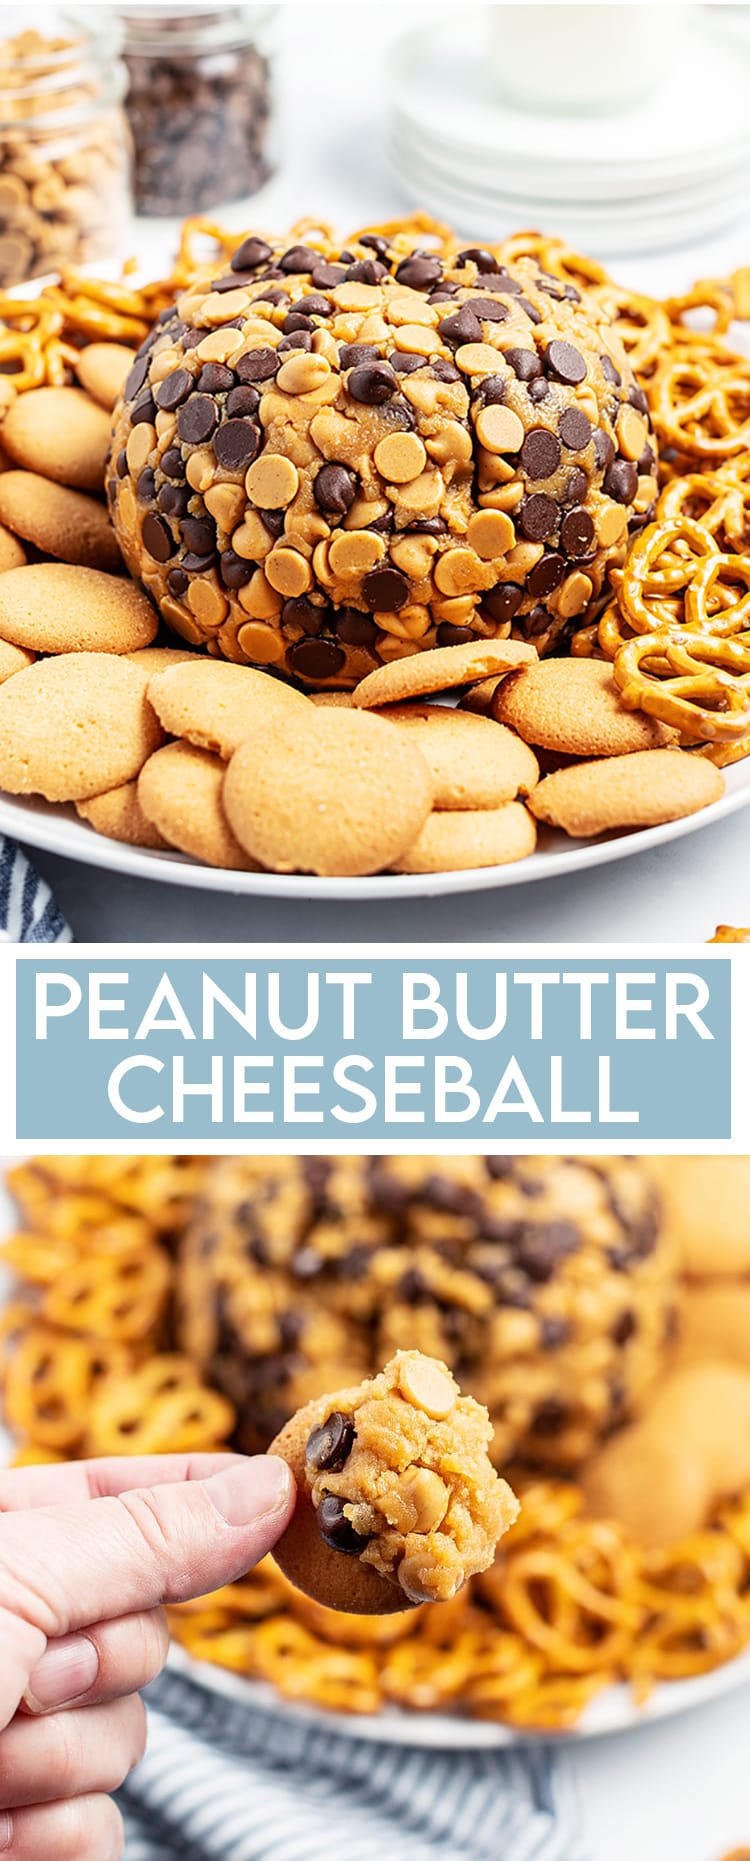 """A peanut butter cheese ball wrapped in chocolate chips and peanut butter chips on a plate with pretzels and cookies, there is a text overlay at the bottom that says """"Peanut Butter Cheeseball"""", and underneath some of the cheeseball is on a nilla wafer cookie."""